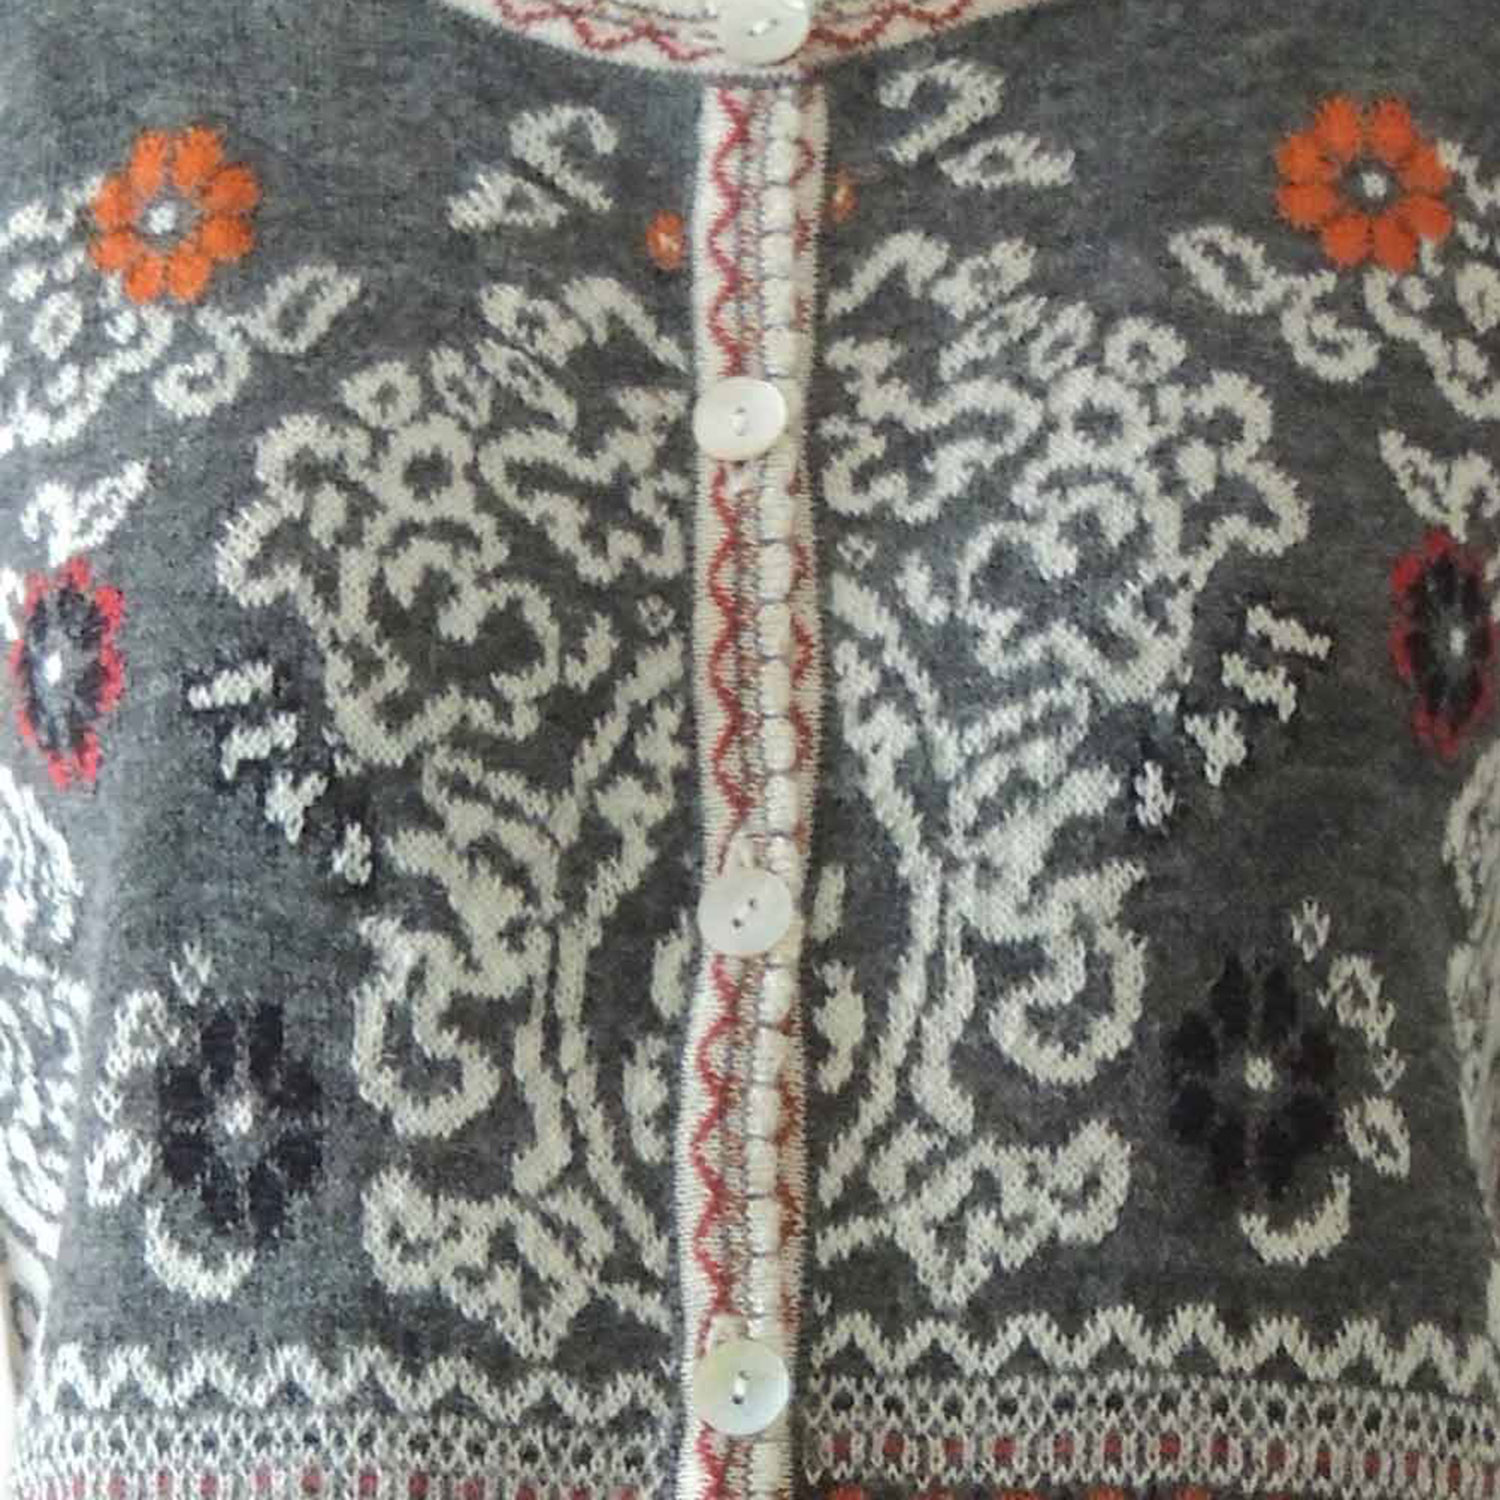 PopsFL knitwear Cardigan Lucy gray - creme - red - orange - black with print in jacquard knit, crew neck and mother of pearl button closure, in 100% baby alpaca wool